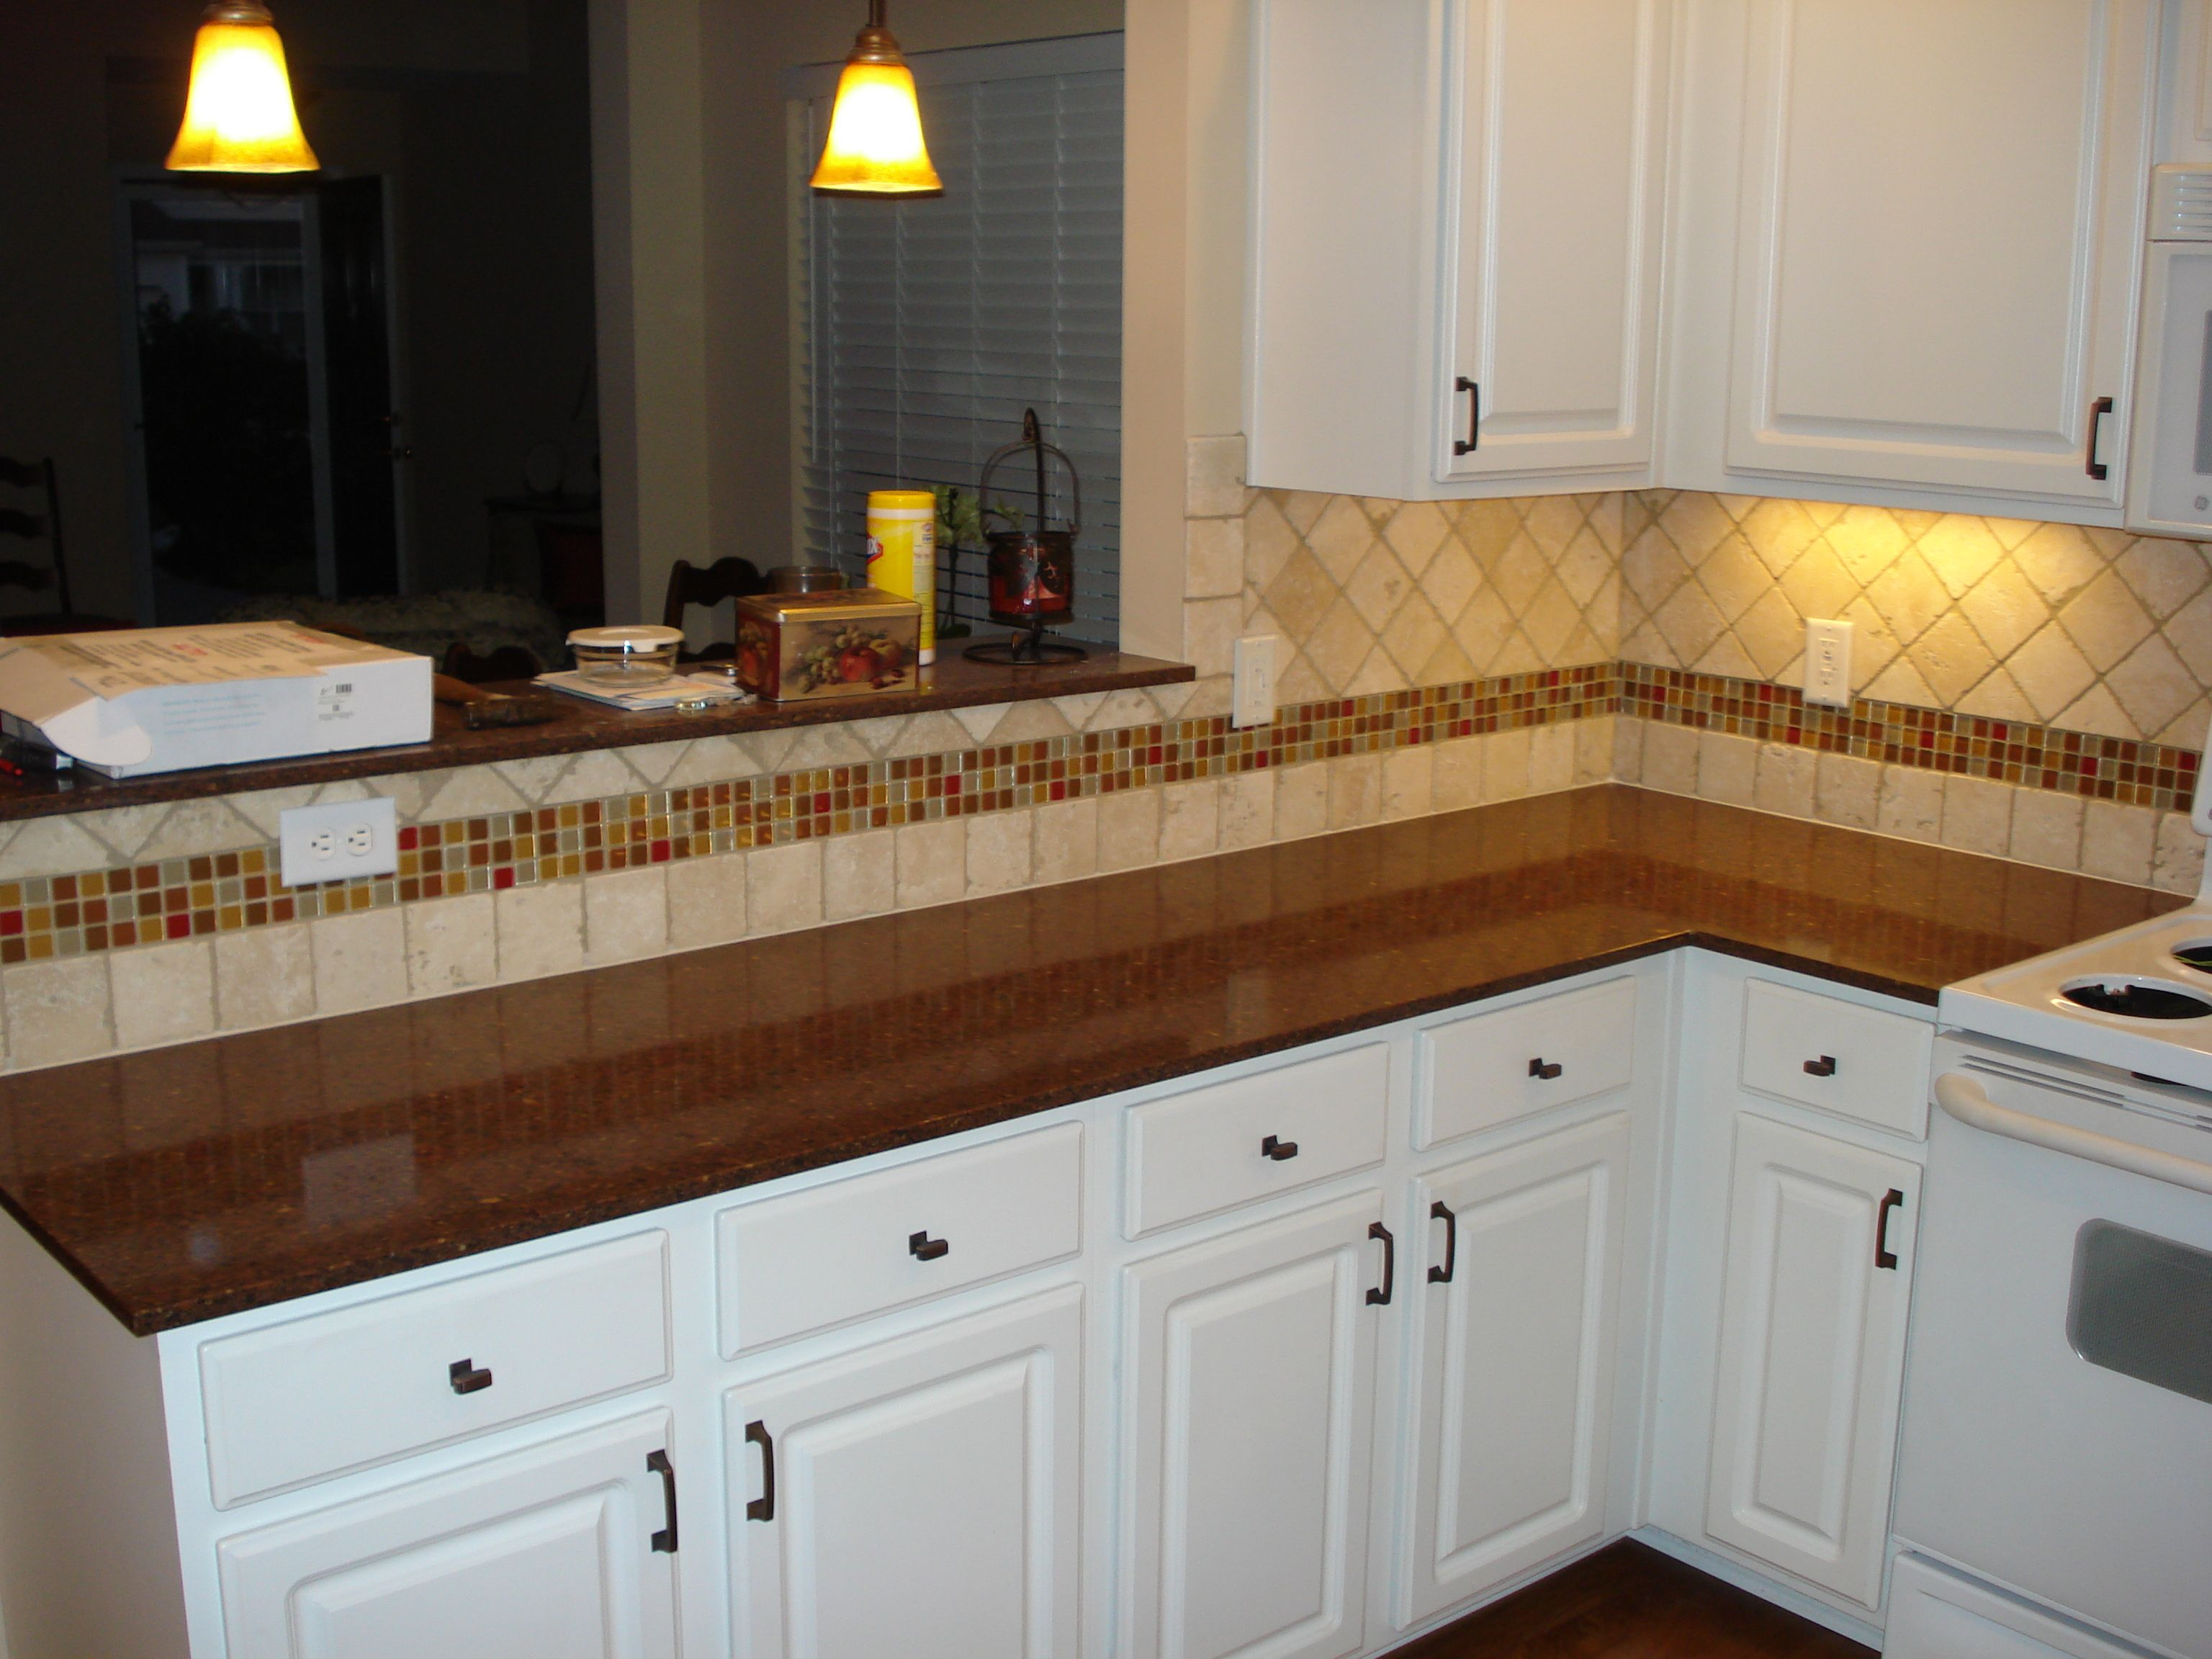 Glass Tile Backsplash | Tumbled Marble Backsplash With Multi Colored Glass  Accent Strip |